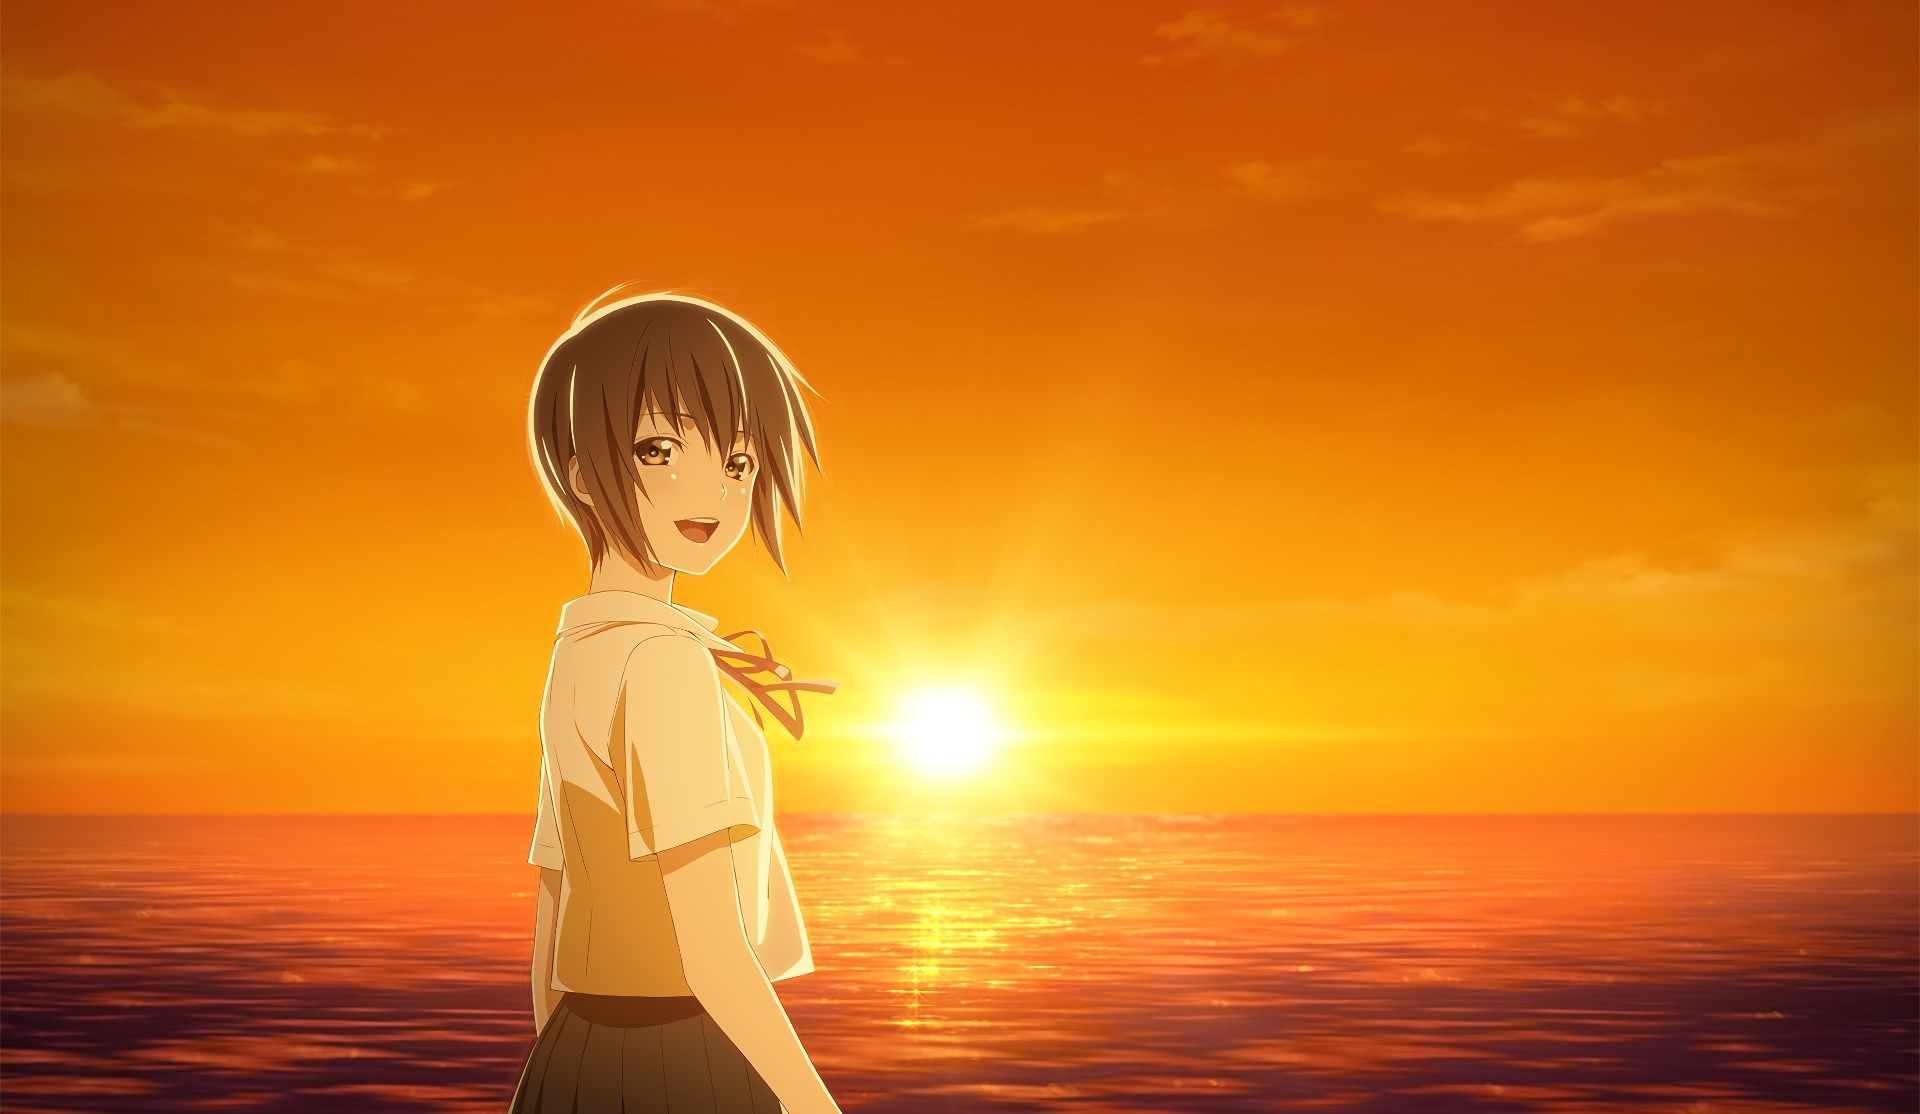 2017-03-25 - sakurada reset wallpaper for large desktop, #1618489